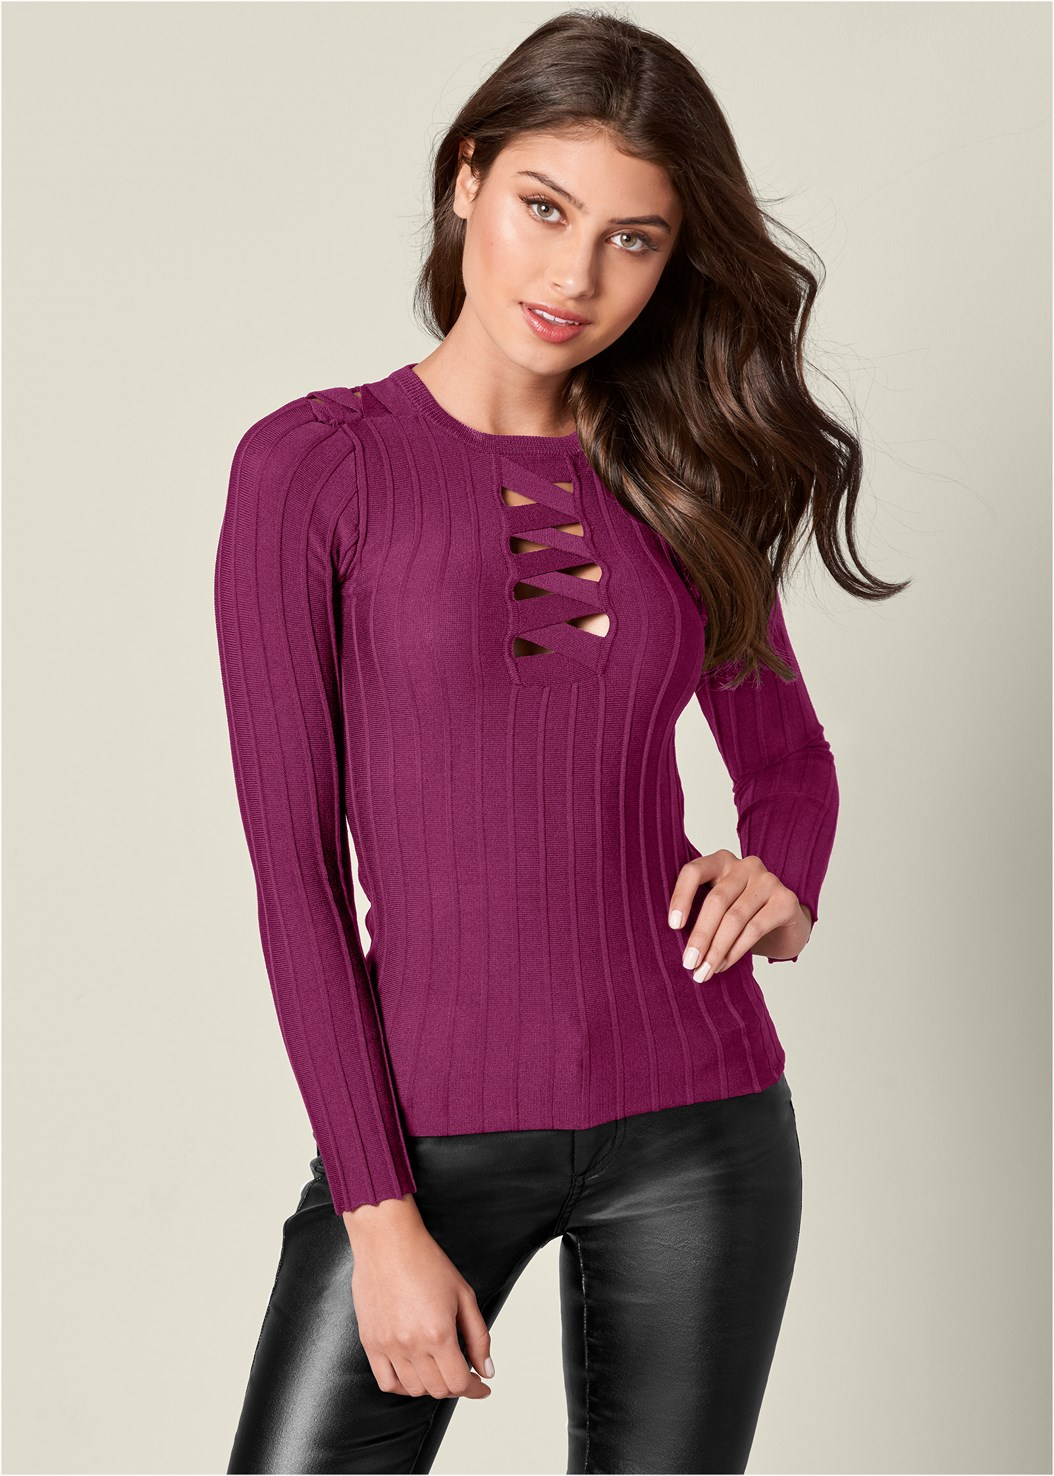 Strappy Detail Sweater,Faux Leather Pants